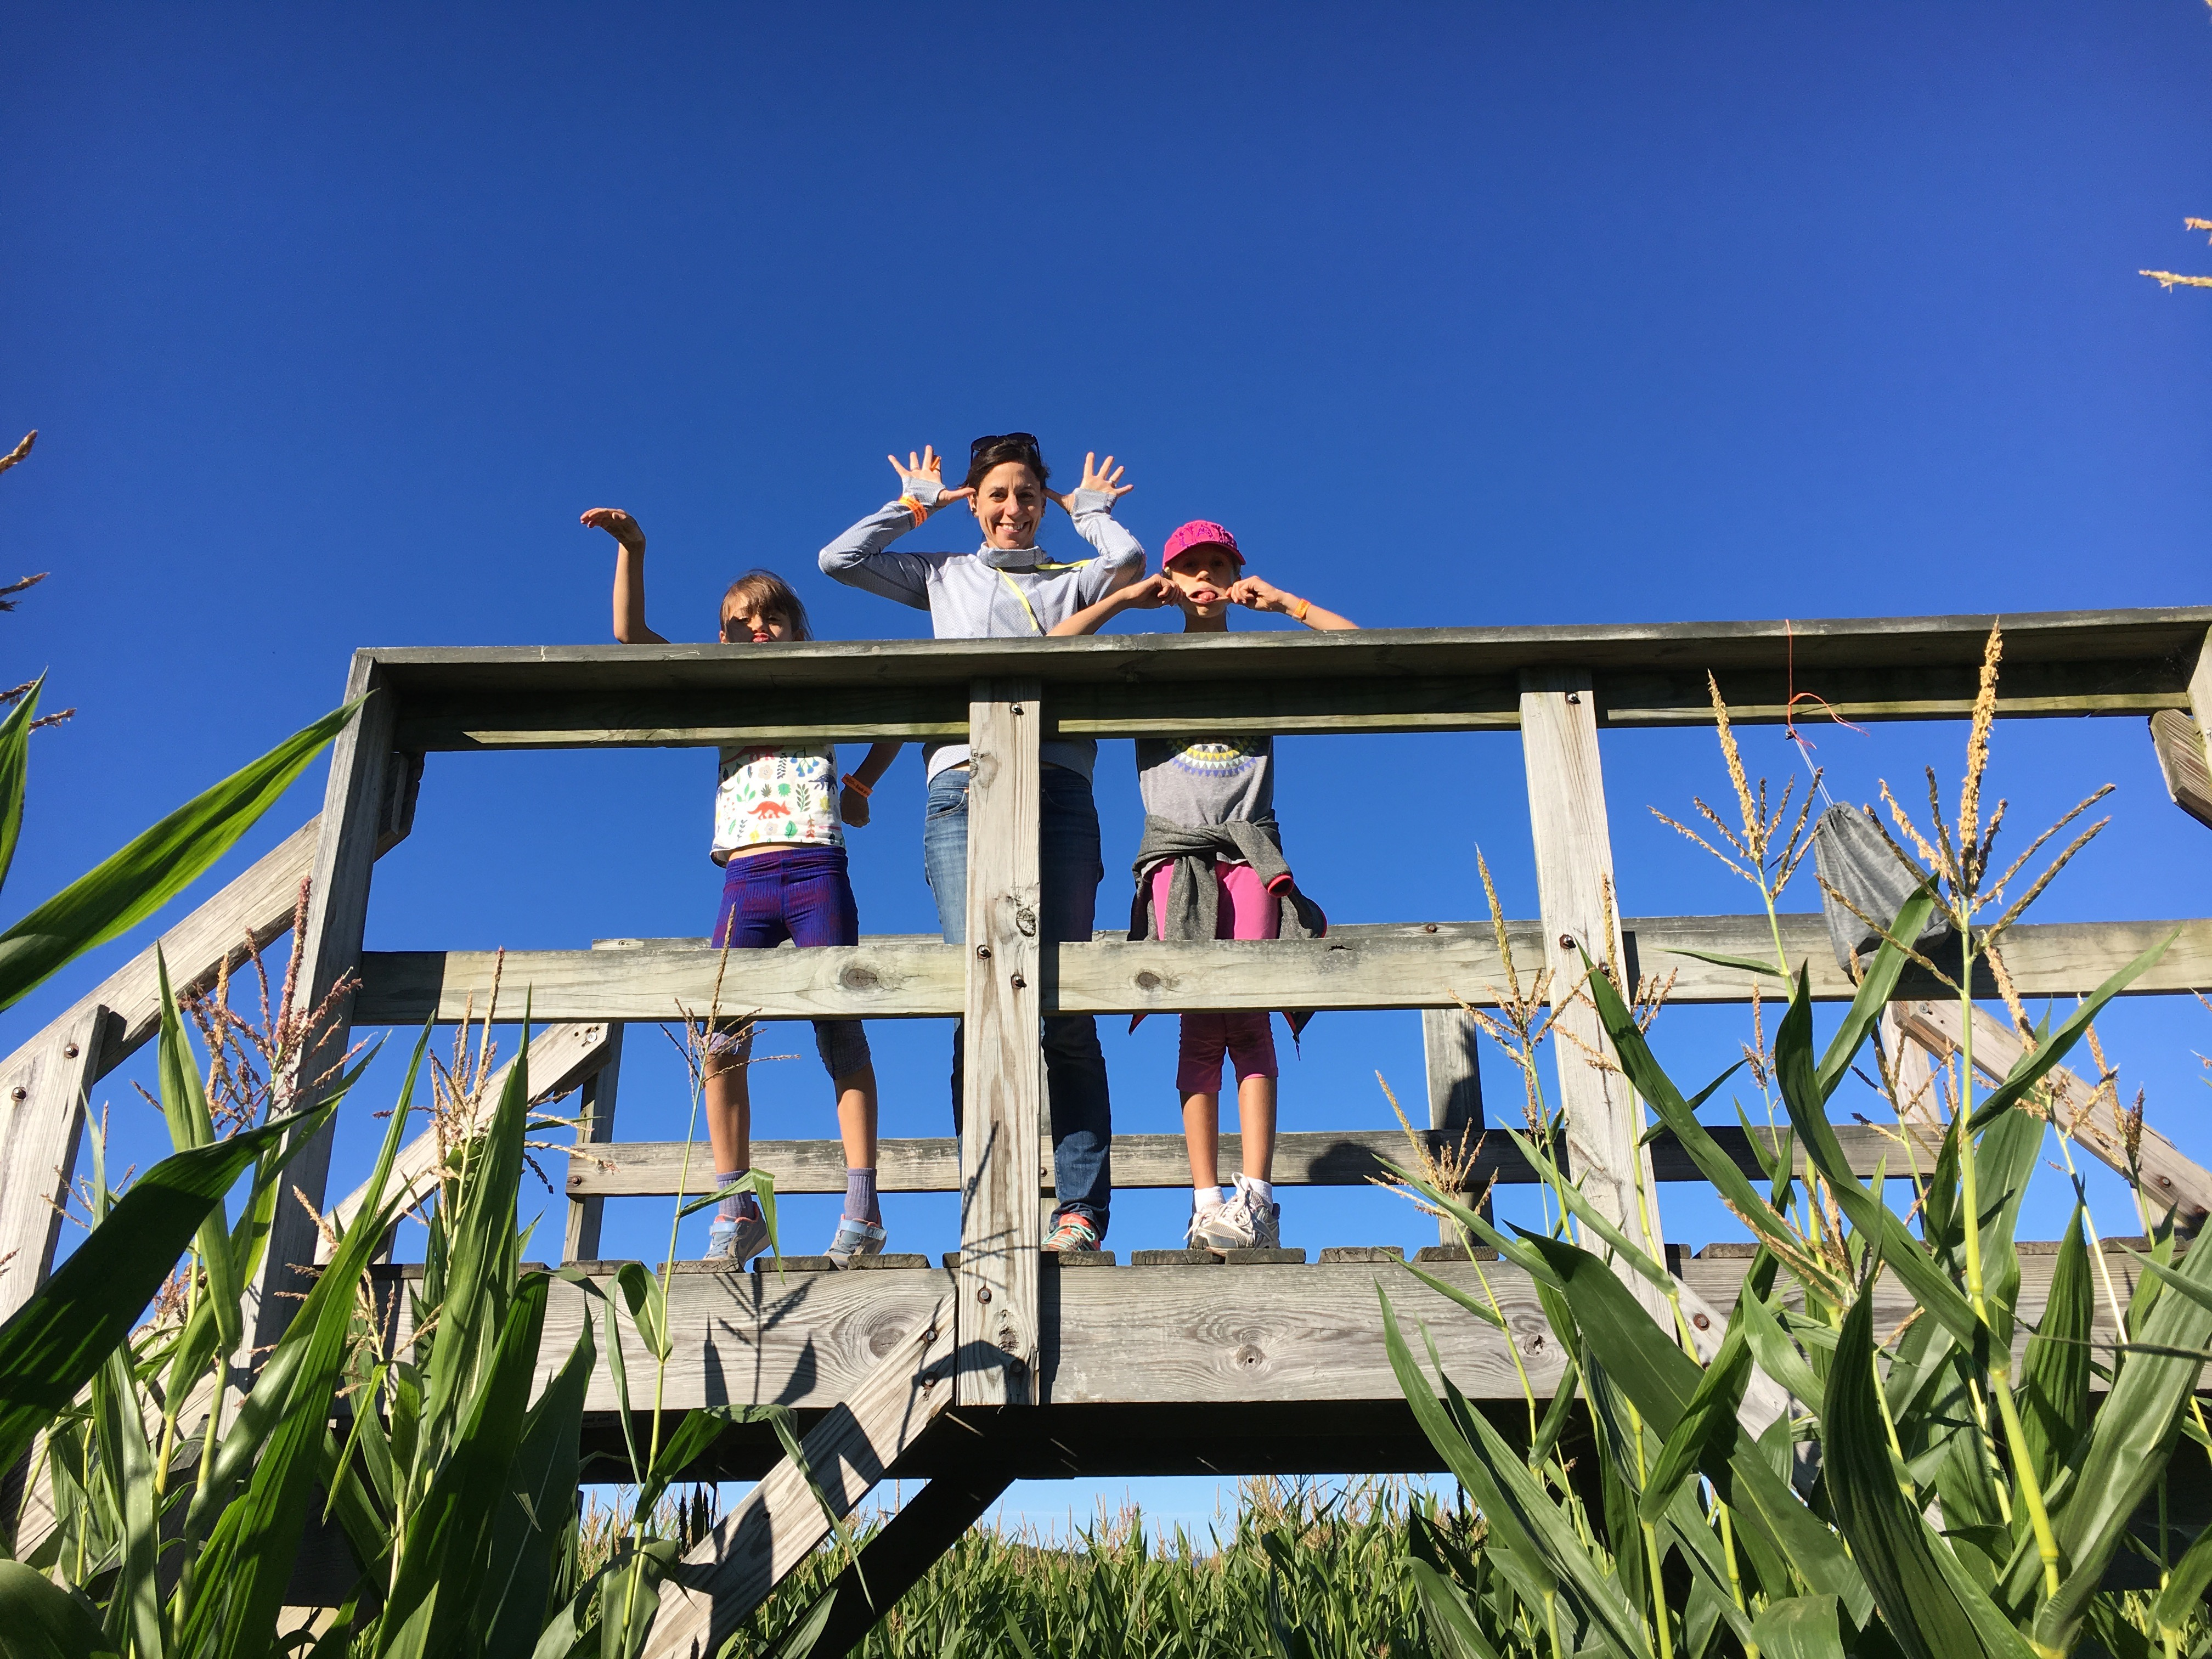 Beans & Greens Farm - cornmaze family fun bridge